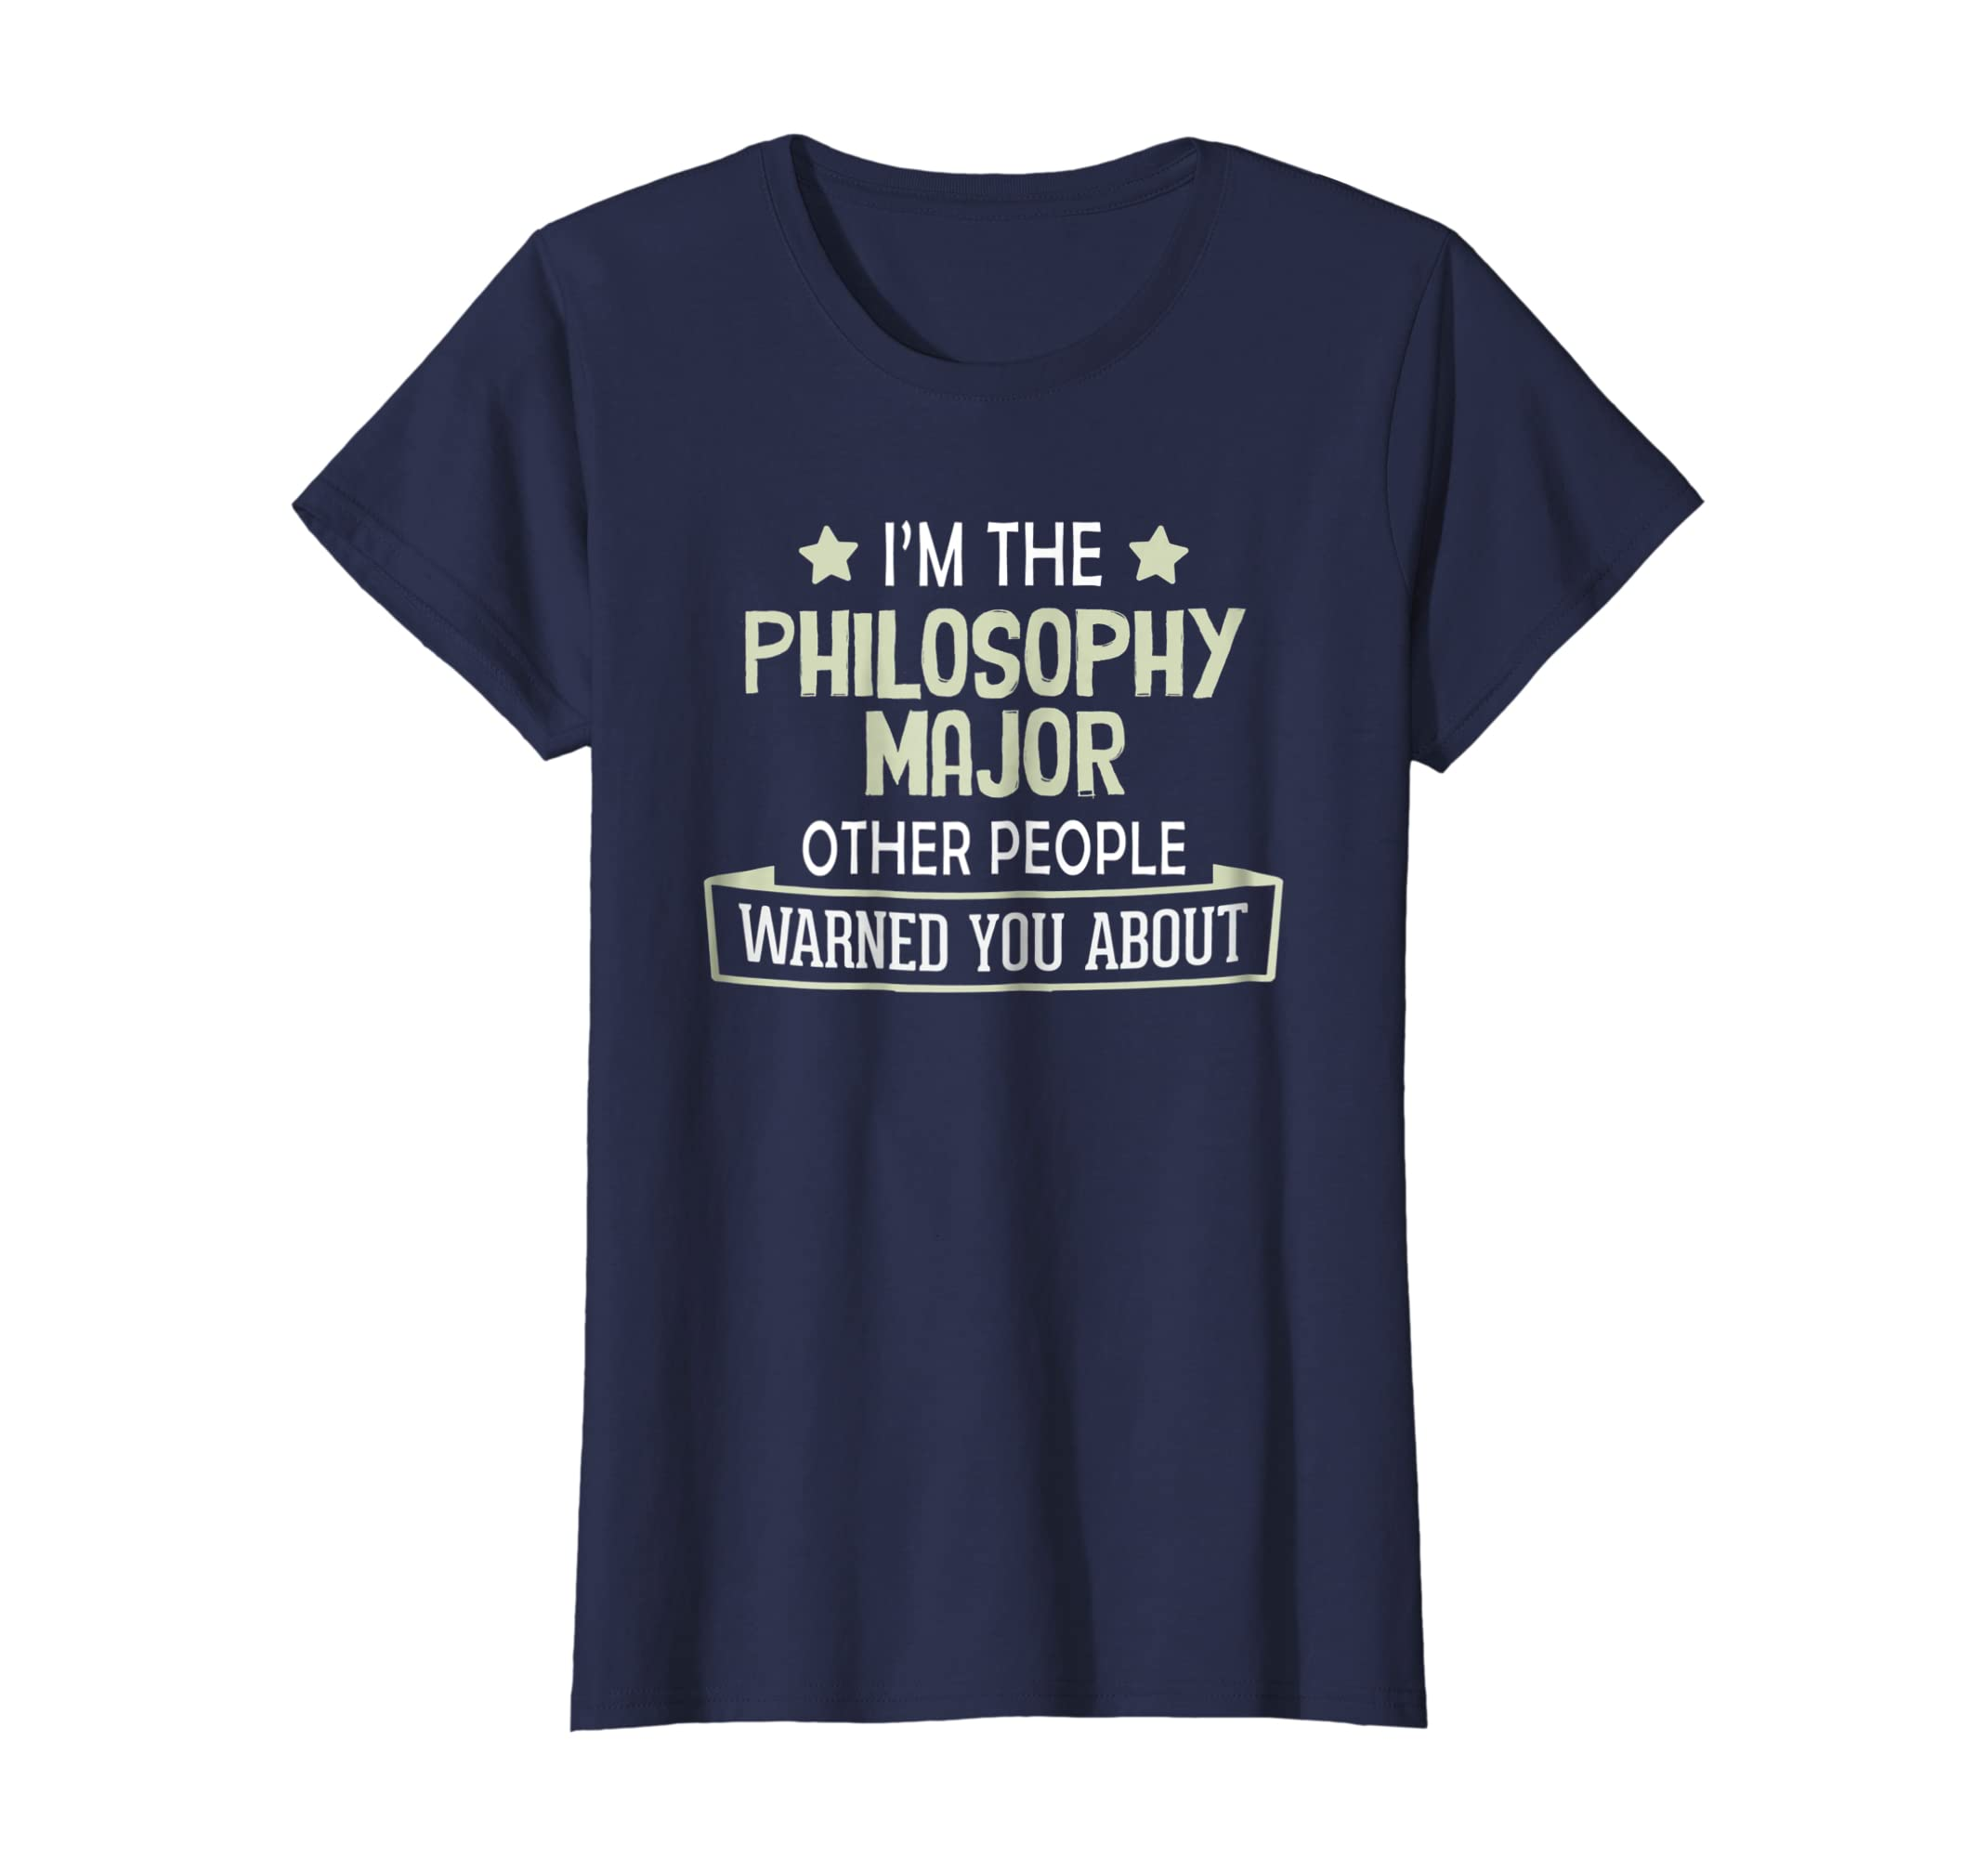 9bd9ffa8 Amazon.com: Philosophy Major T-Shirt - Warned You About!: Clothing